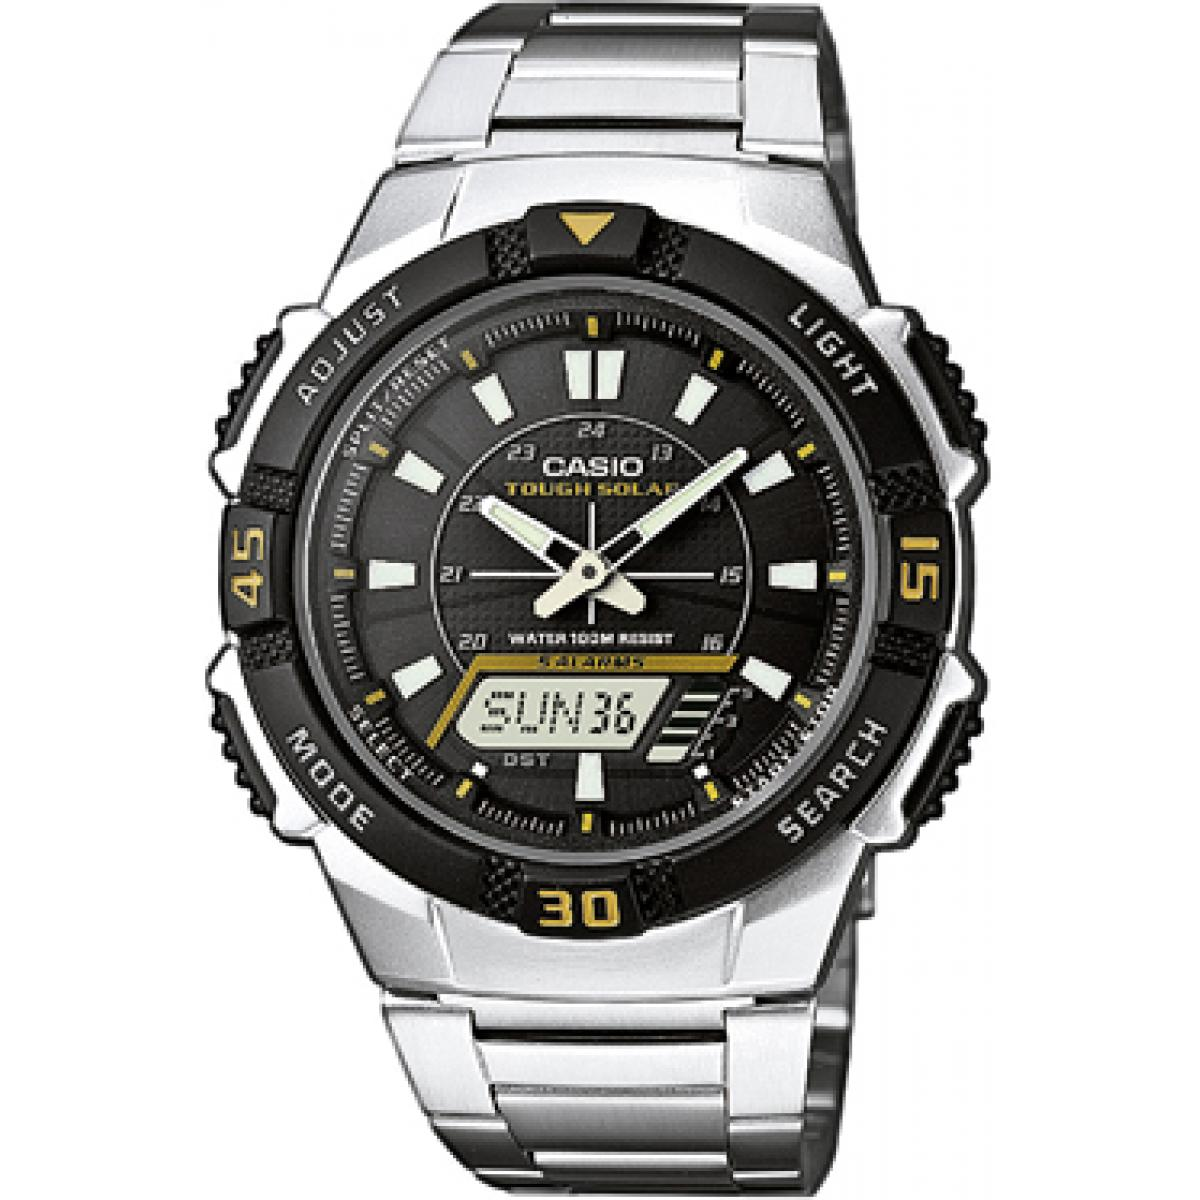 Montre Casio Acier Casio Collection AQ-S800WD-1EVEF - Homme